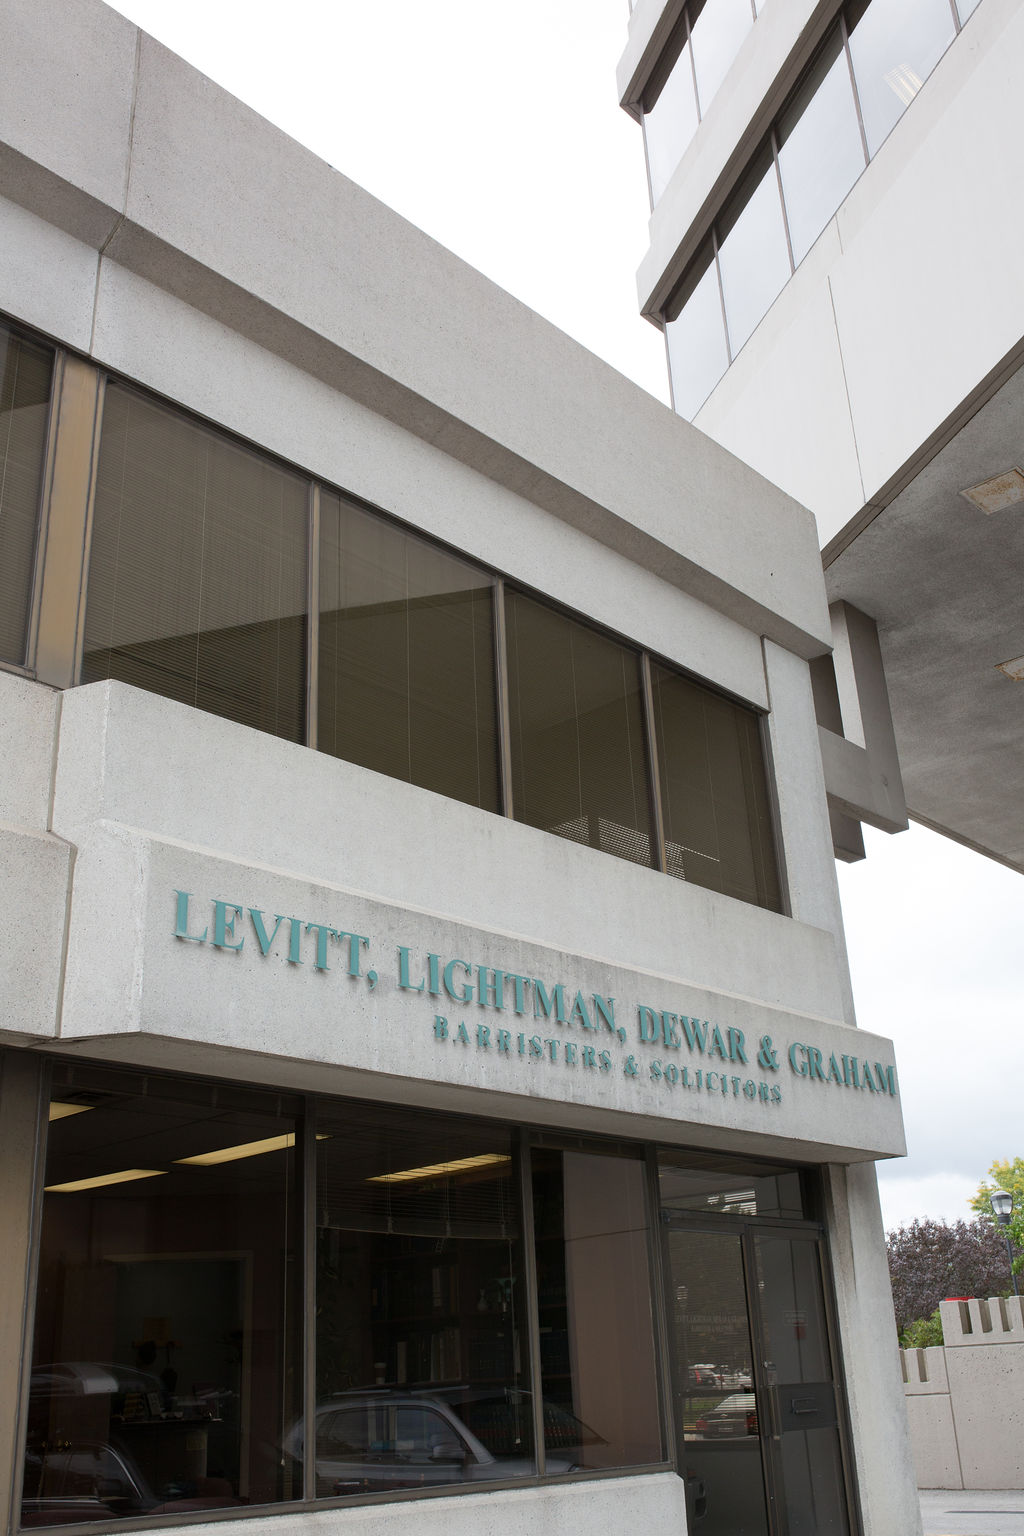 Facade of LLDG building